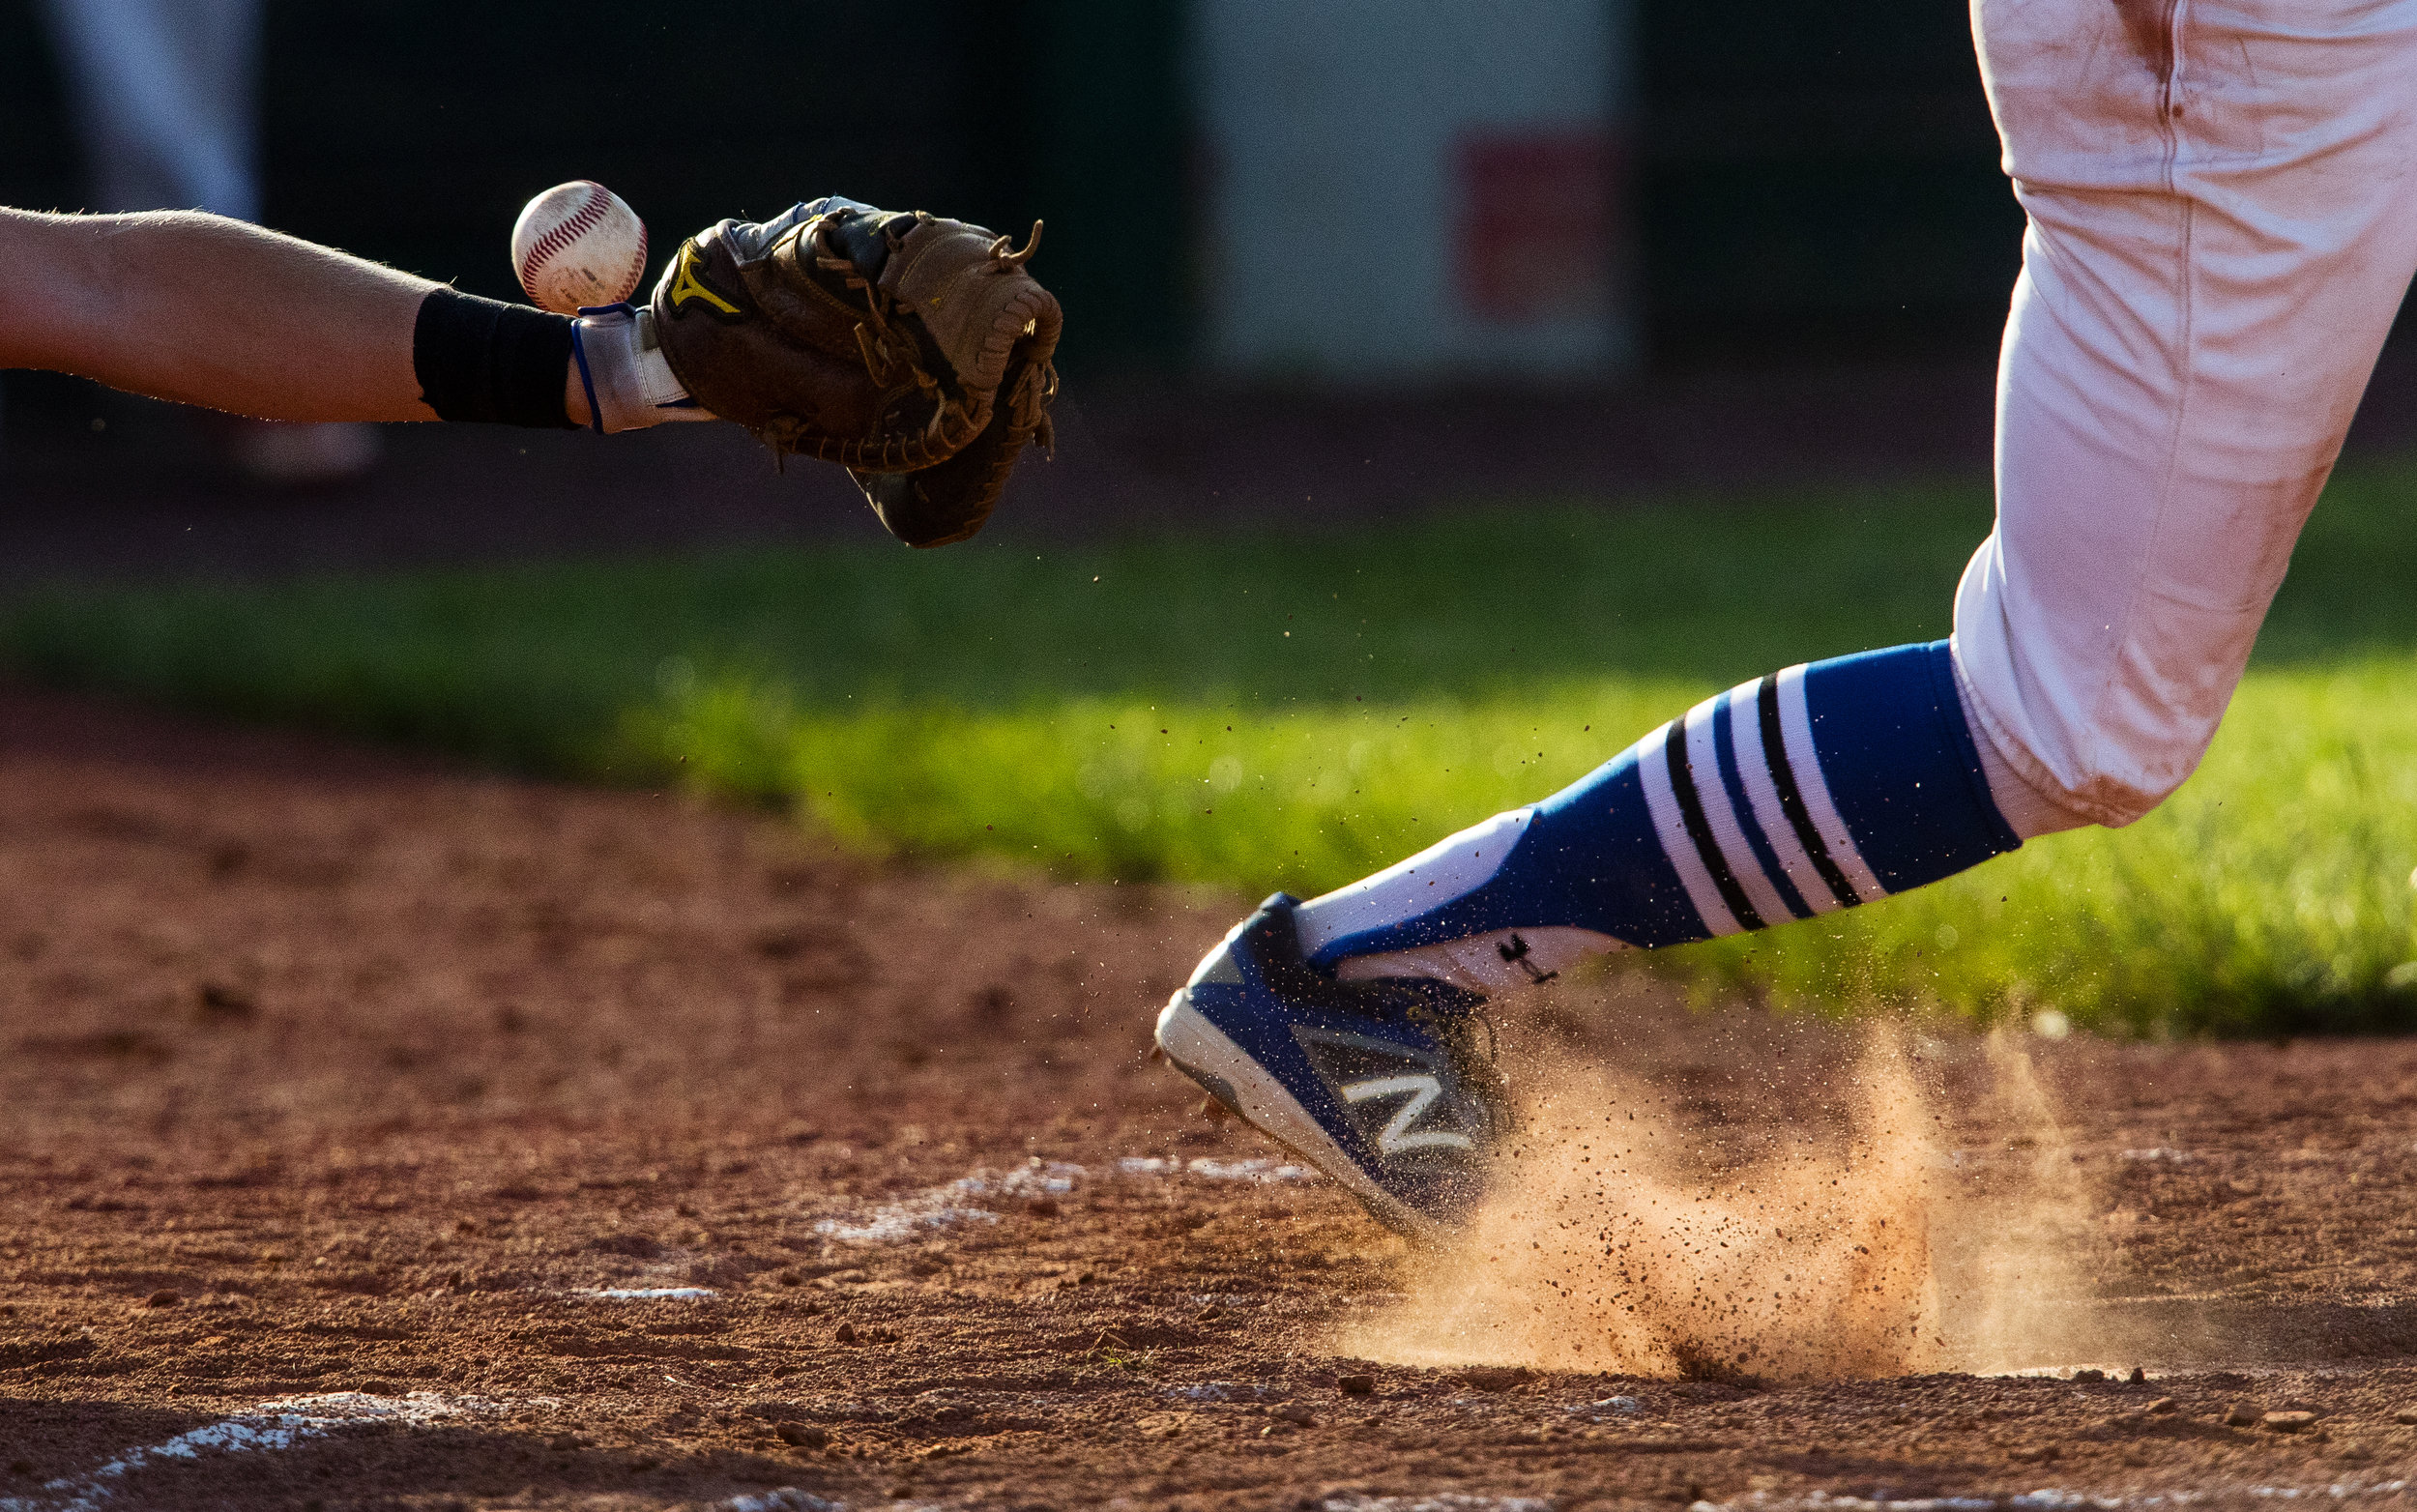 A low pitch hits the dirt and bounces over the catcher's mitt during the Baseball Classic at Claude Kracik Field at Lincoln Land Community College Tuesday, June 12, 2018. [Ted Schurter/The State Journal-Register]